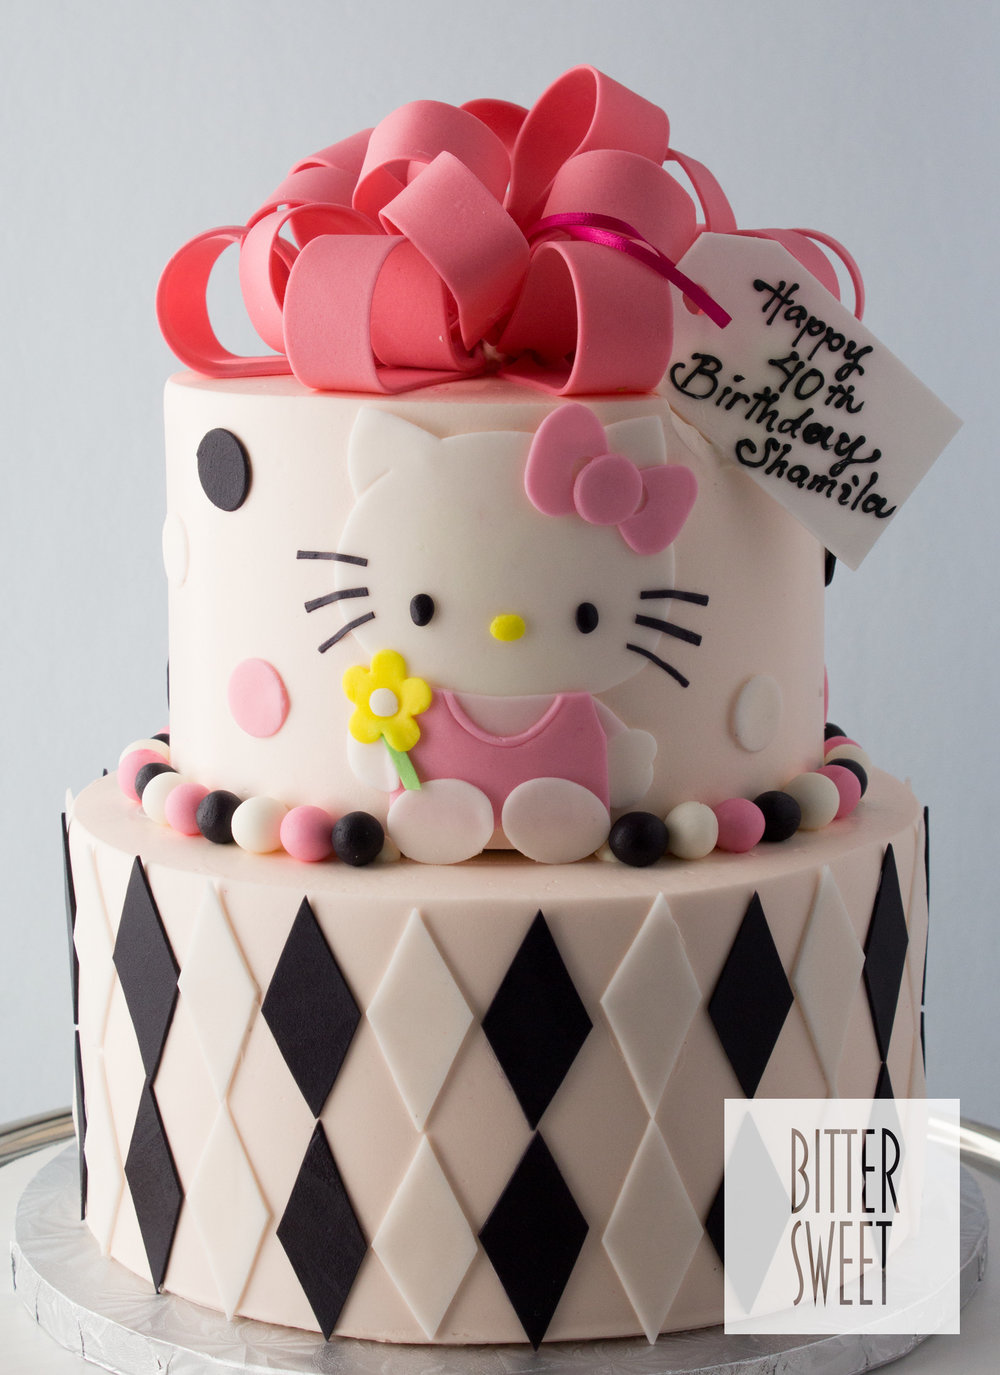 Bittersweet Birthday_Hello Kitty.jpg